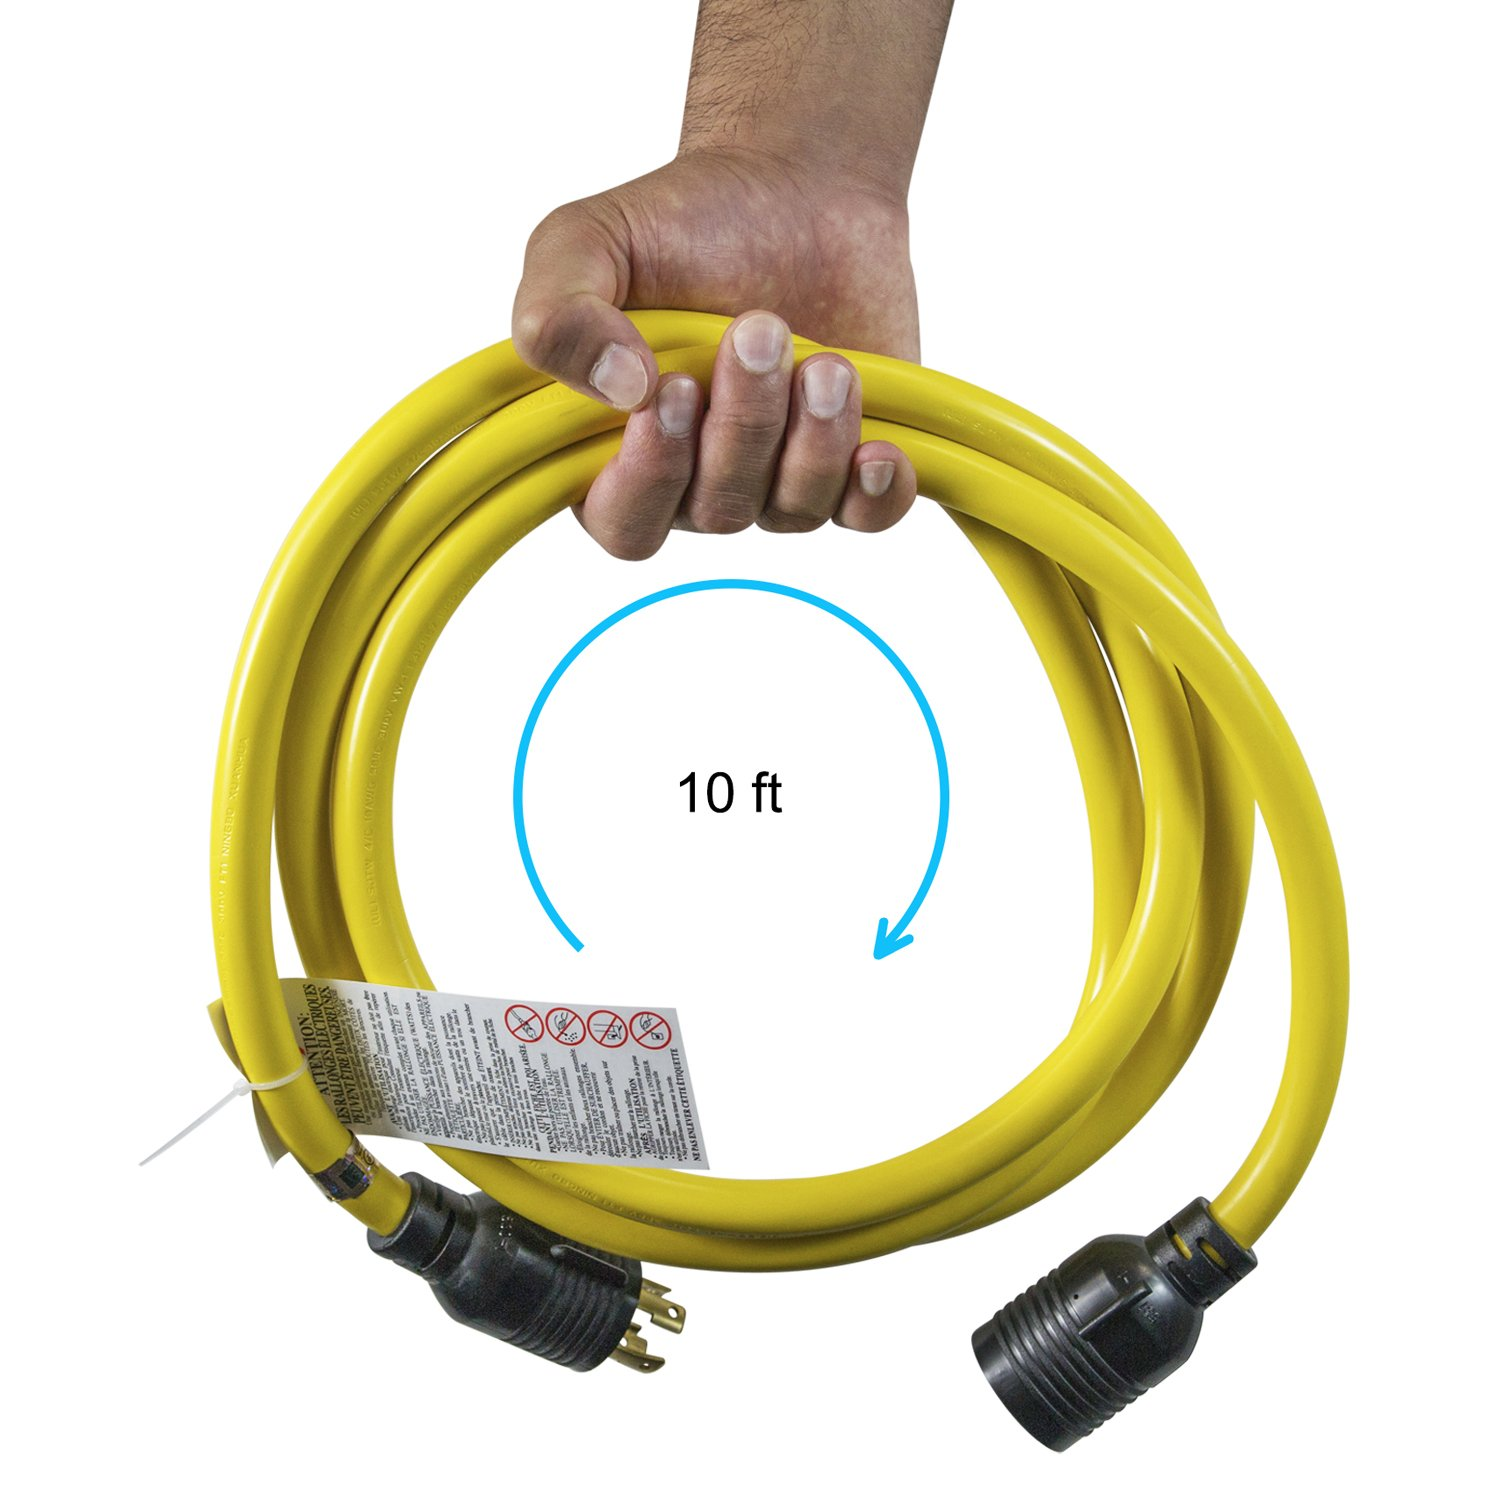 Houseables Generator Cord, Electric Extension Wire, 4 Prong, 30 Amp ...